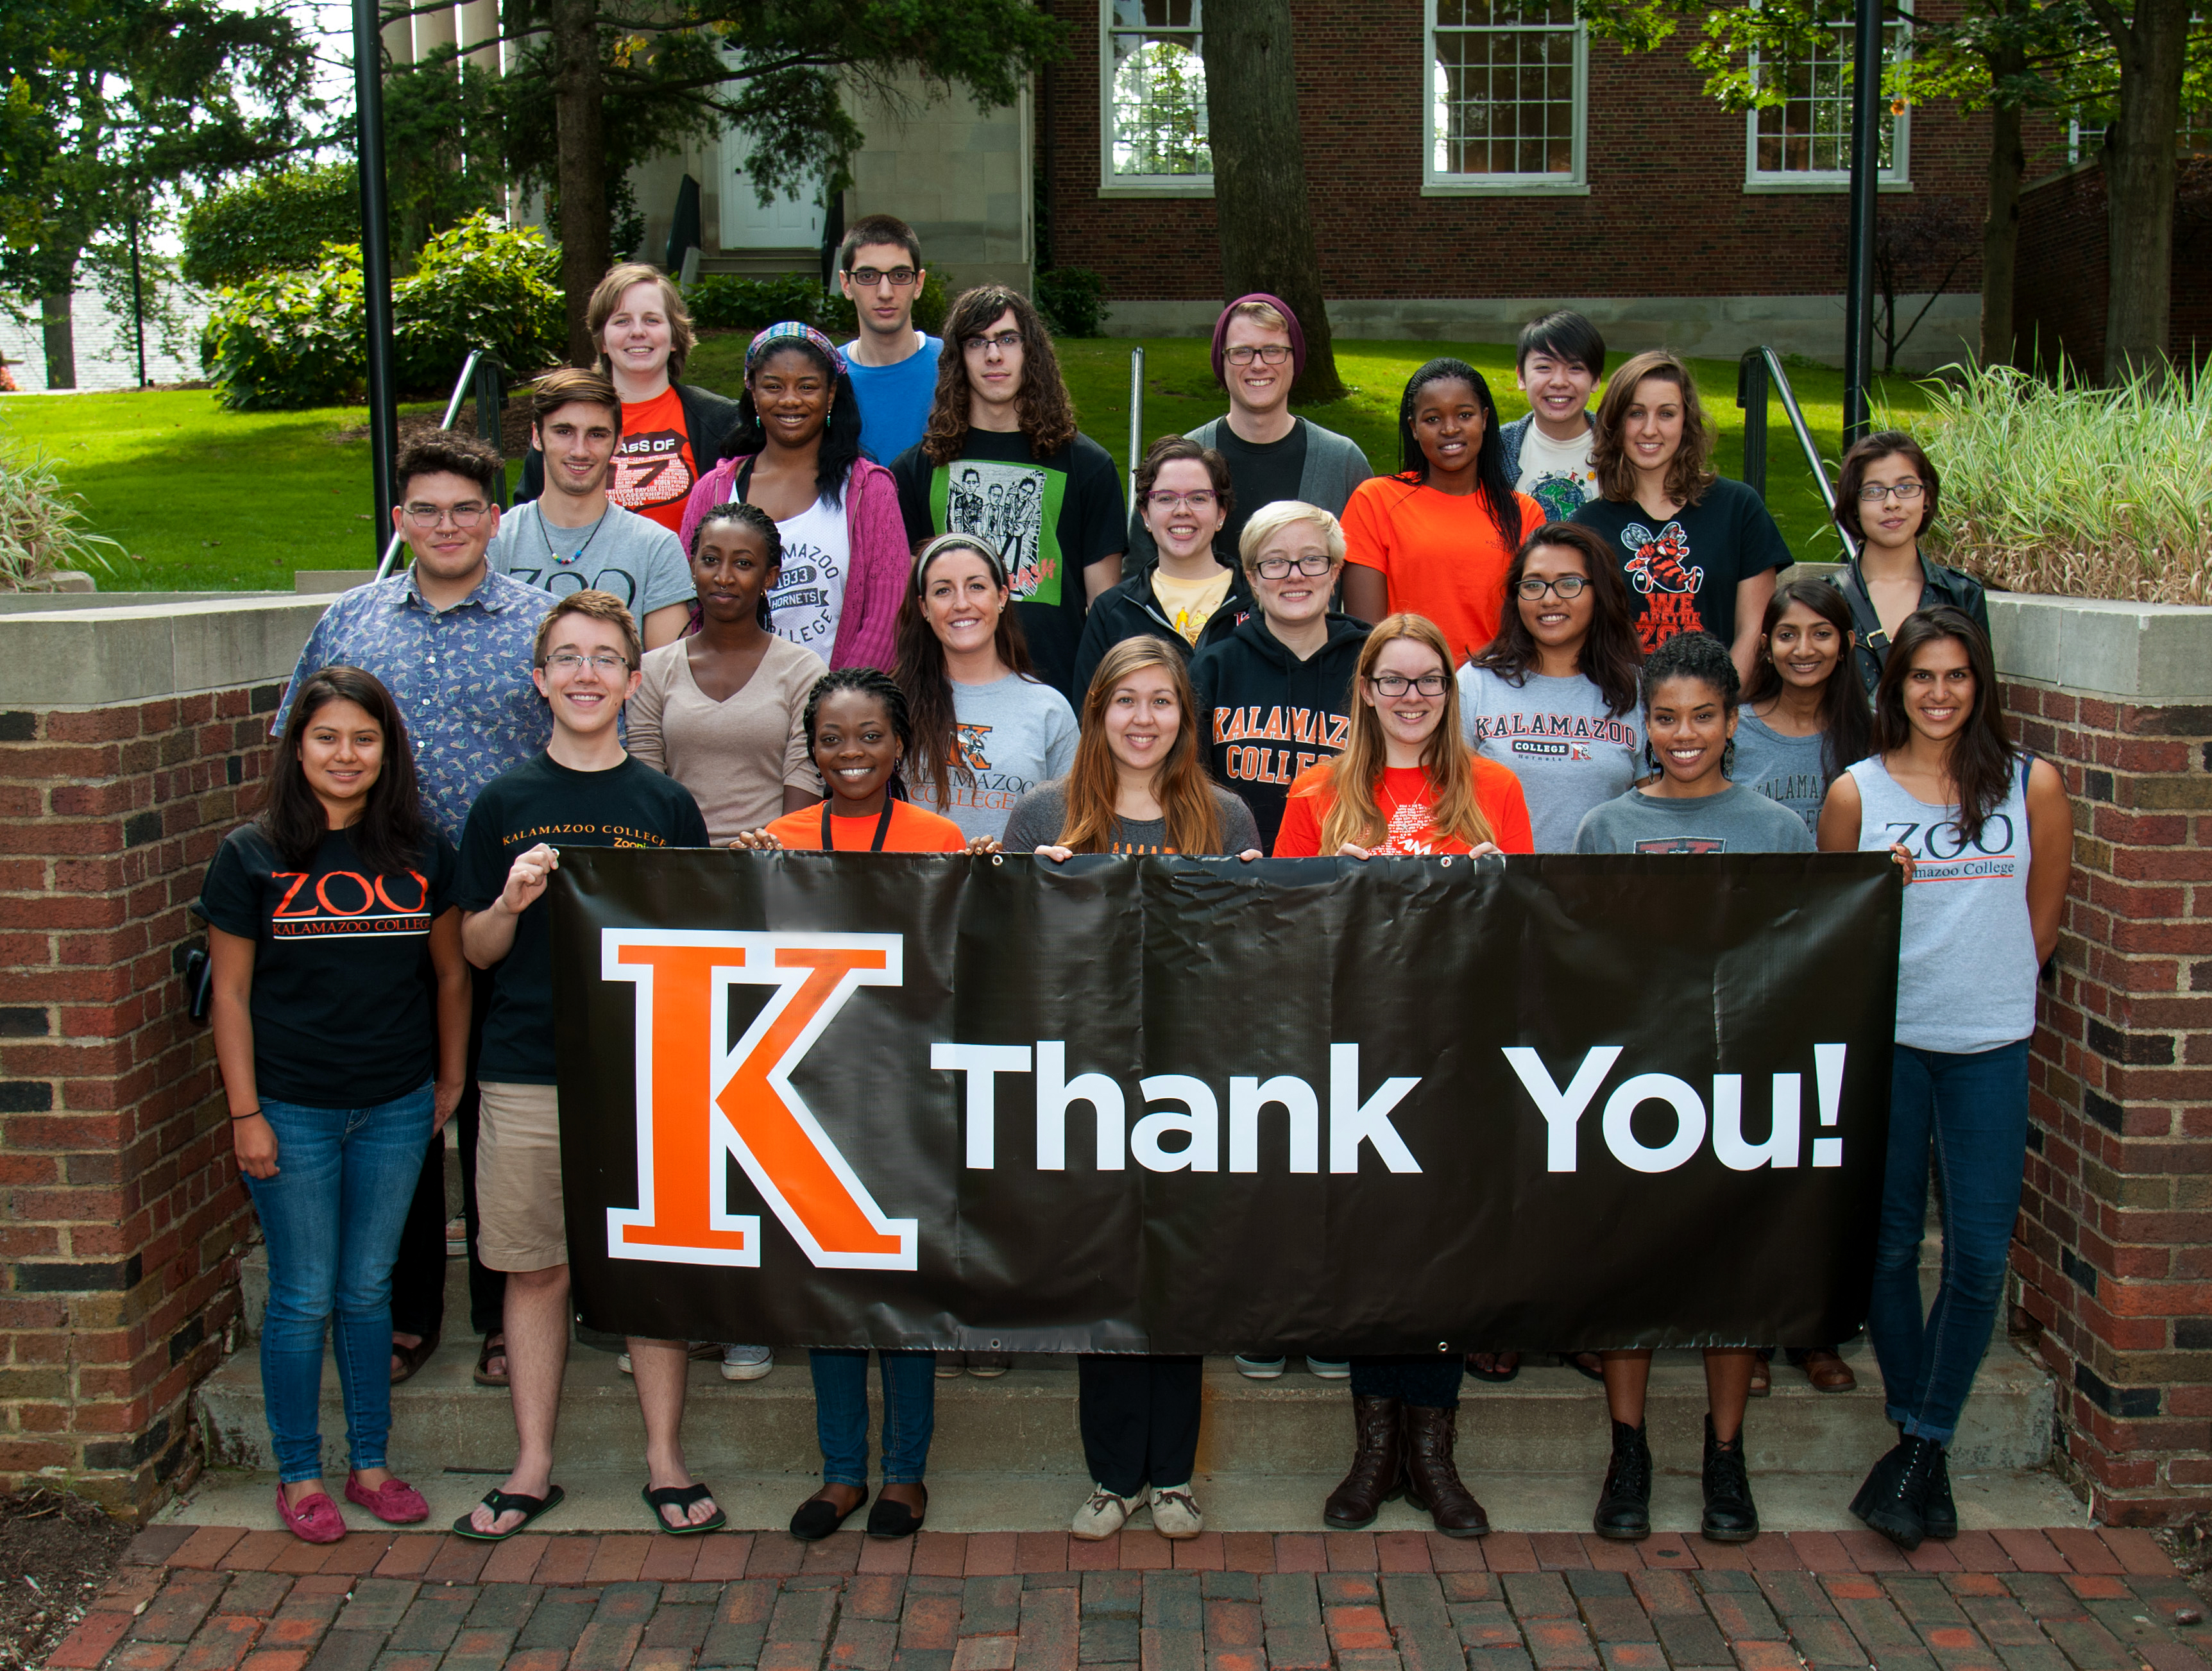 Kalamazoo College student phonathon callers holding a Thank You banner.